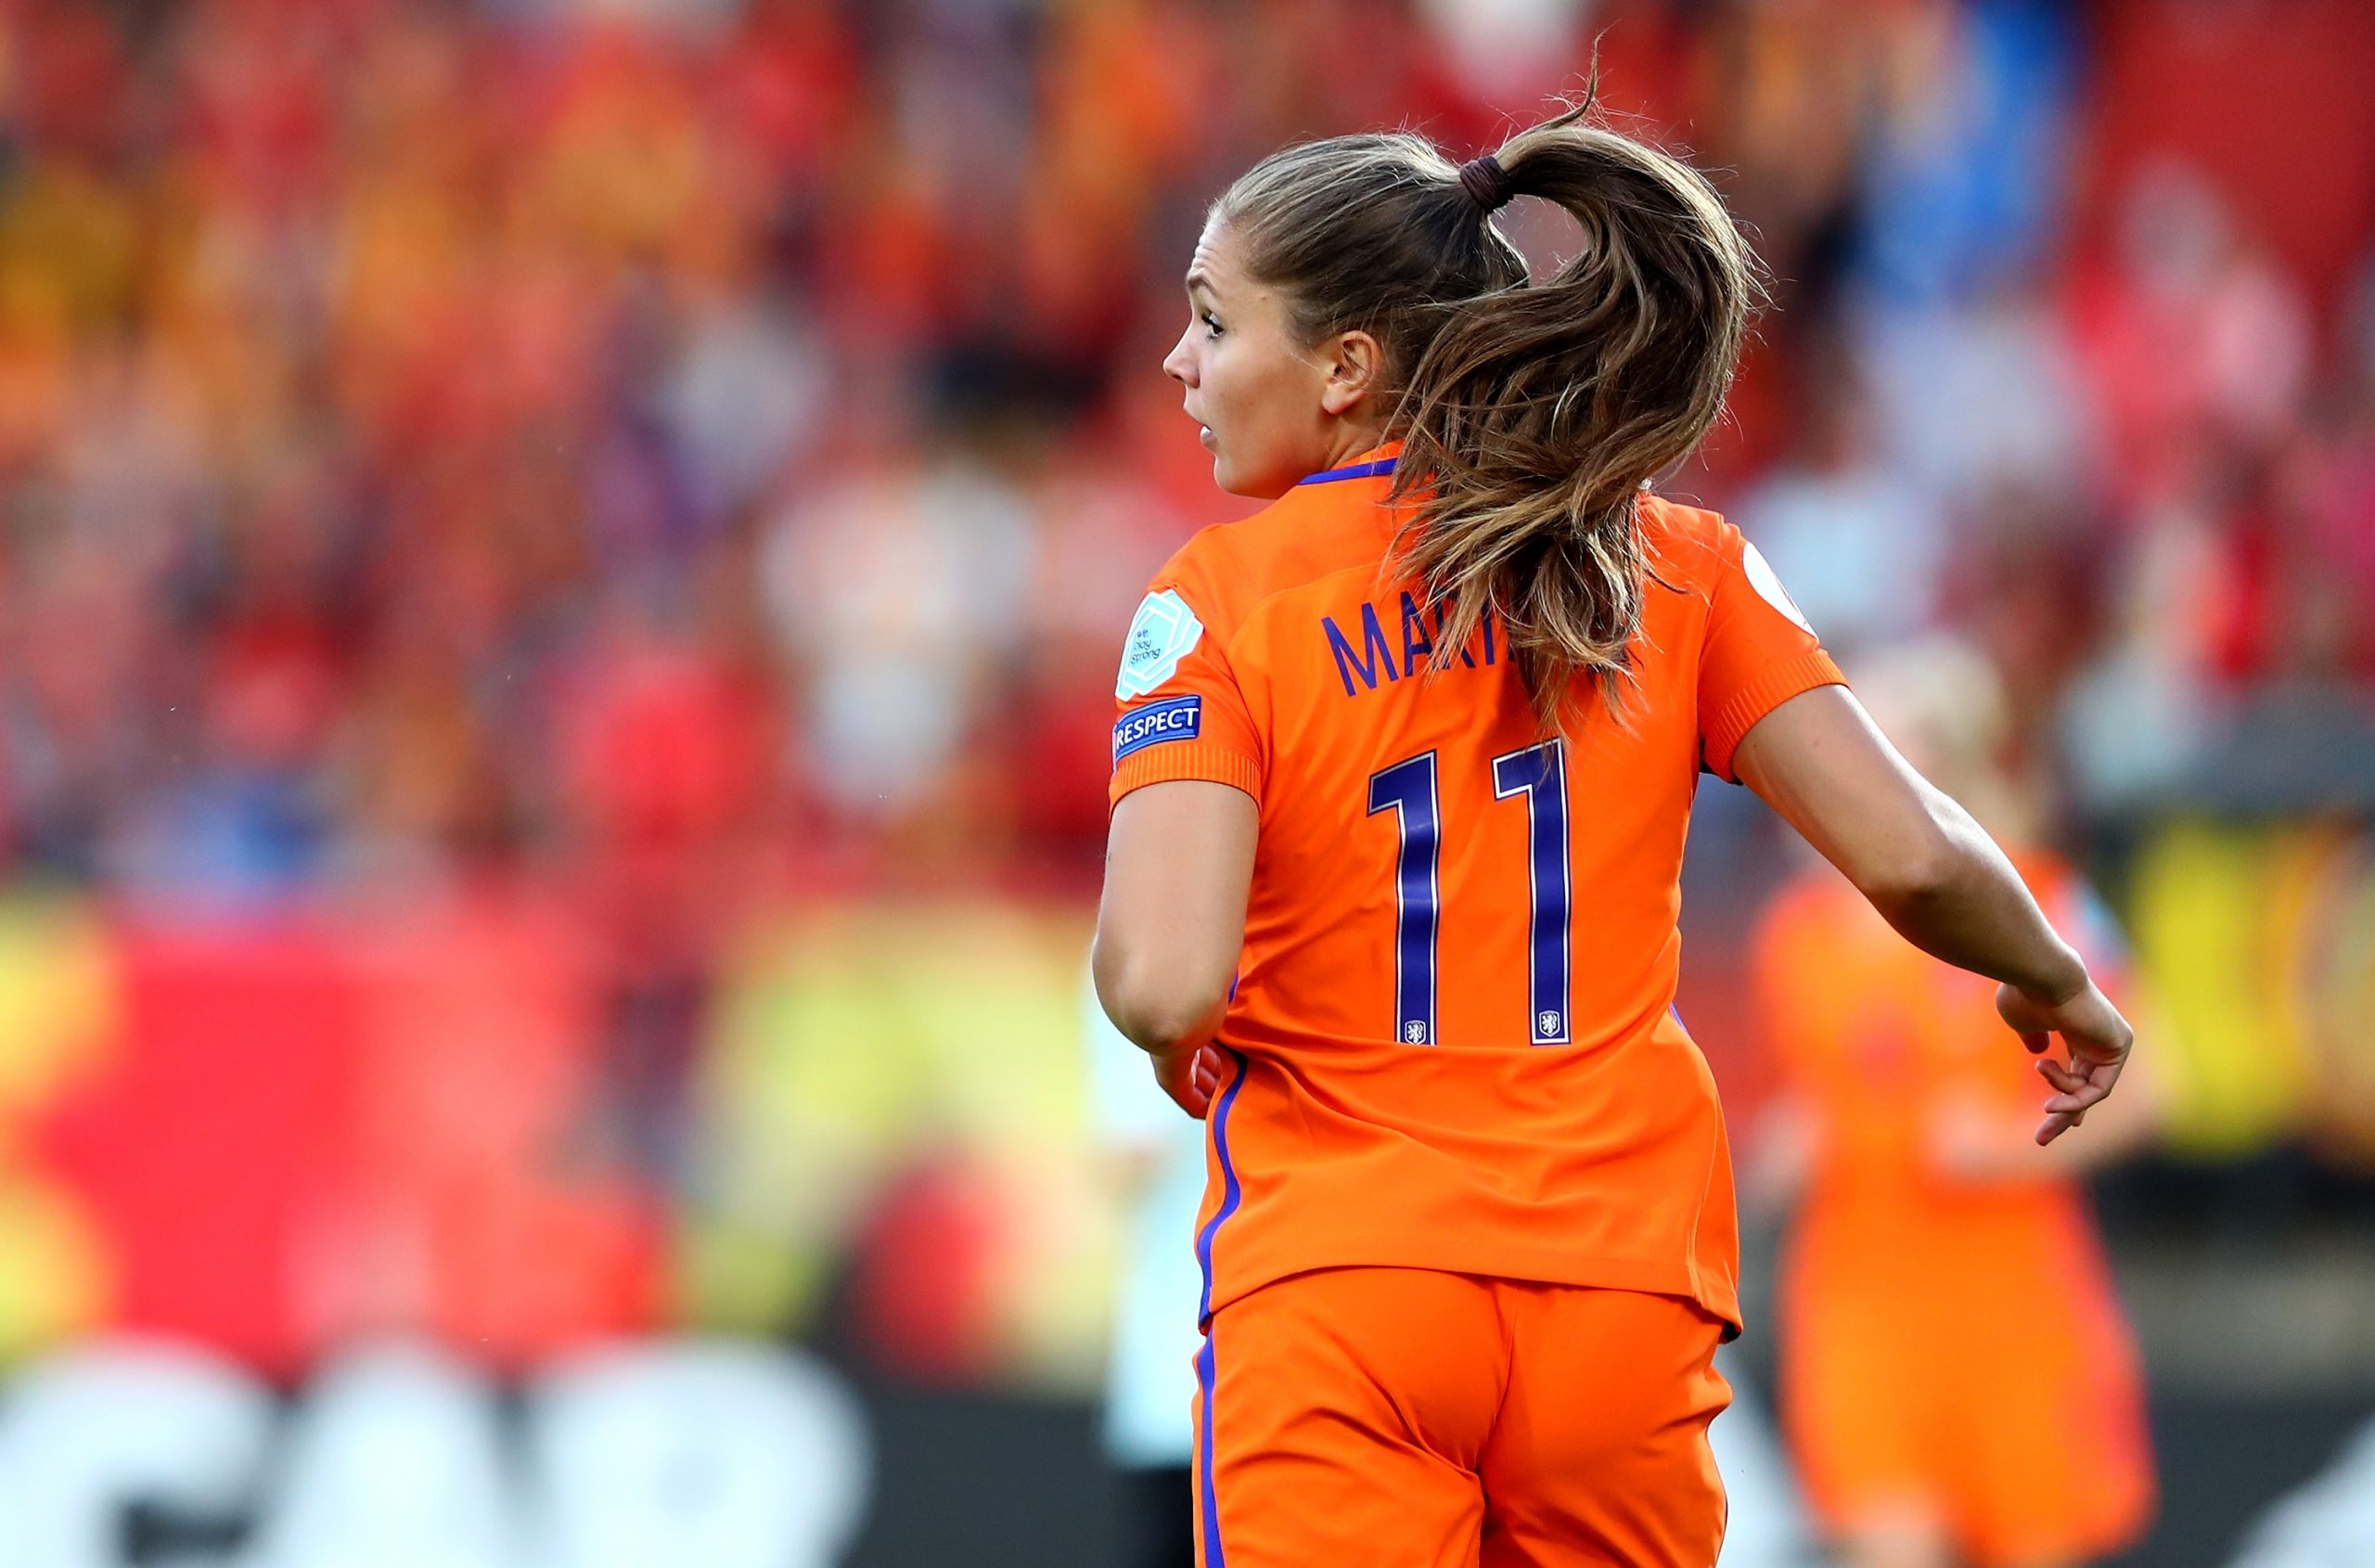 TILBURG, NETHERLANDS – JULY 24: Lieke Martens of Netherlands in action during the Group A match between Belgium and Netherlands  during the UEFA Women's Euro 2017 at Koning Willem II Stadium on July 24, 2017 in Tilburg, Netherlands.  (Photo by Dean Mouhtaropoulos/Getty Images)